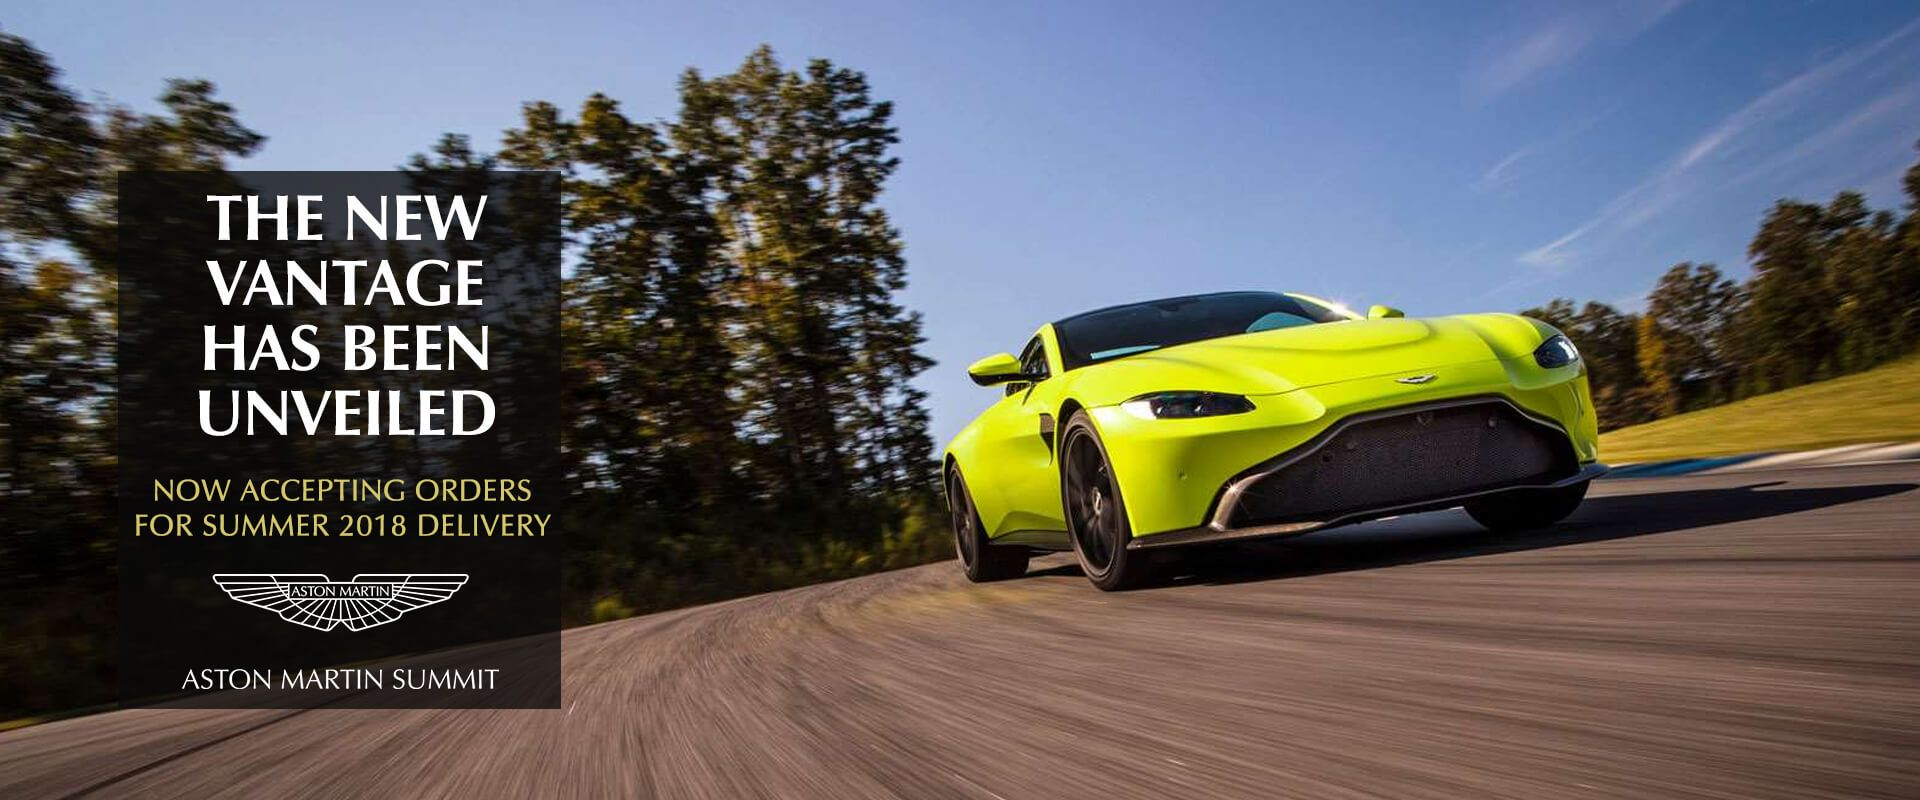 New vantage unveiled!